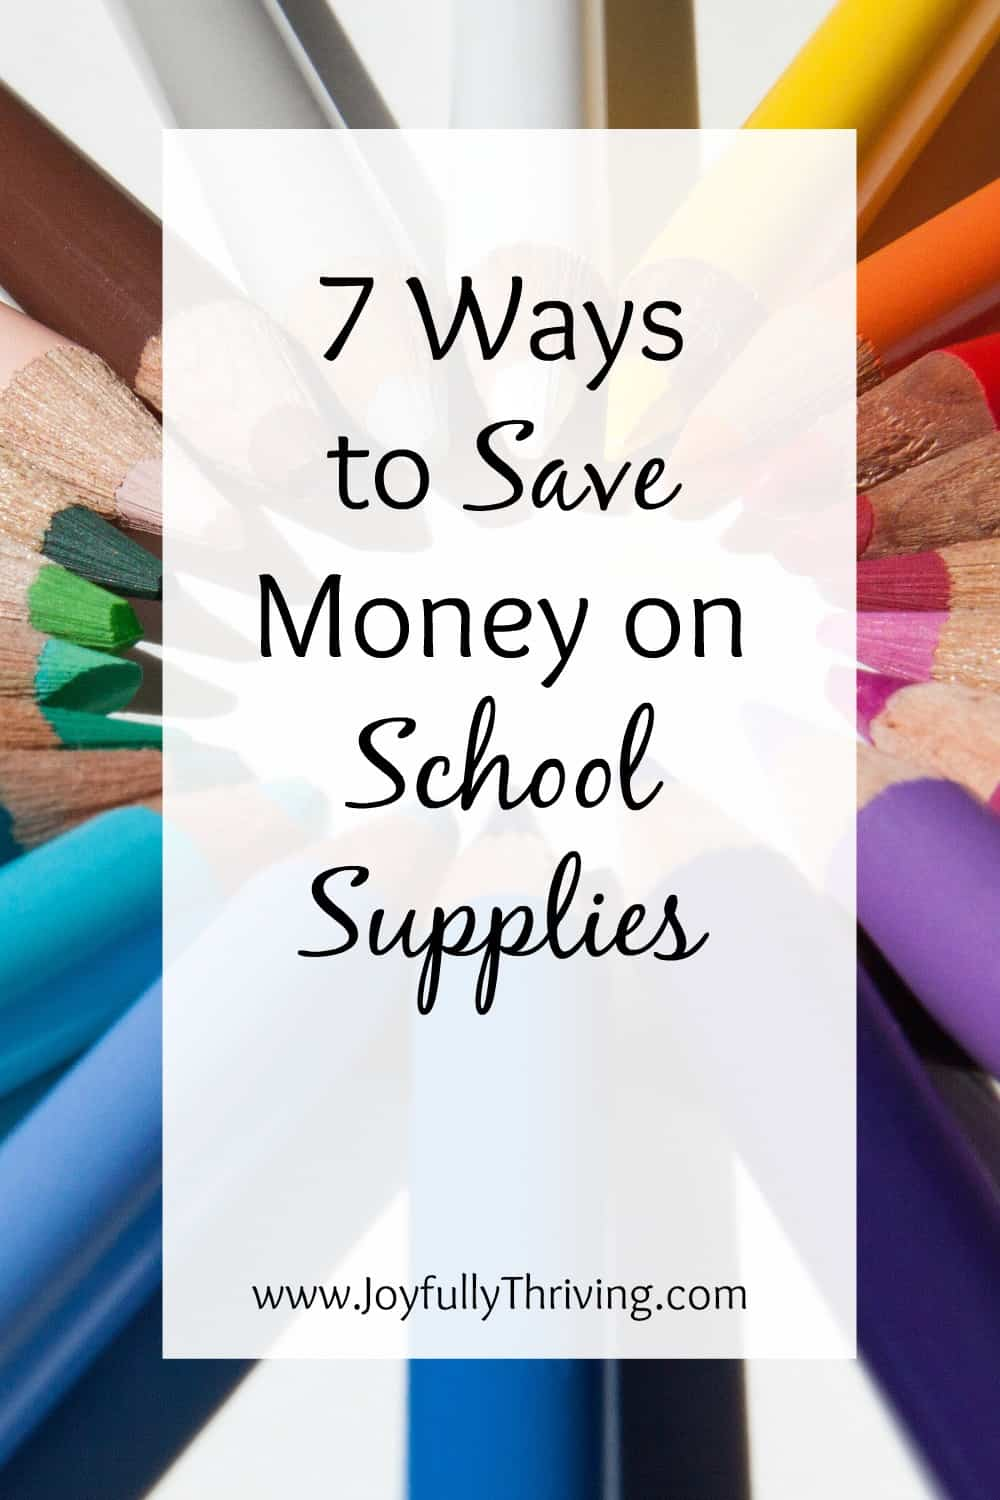 It's almost back to school time, and this list has 7 quick ways to save money on school supplies. It's a great help for all Moms!